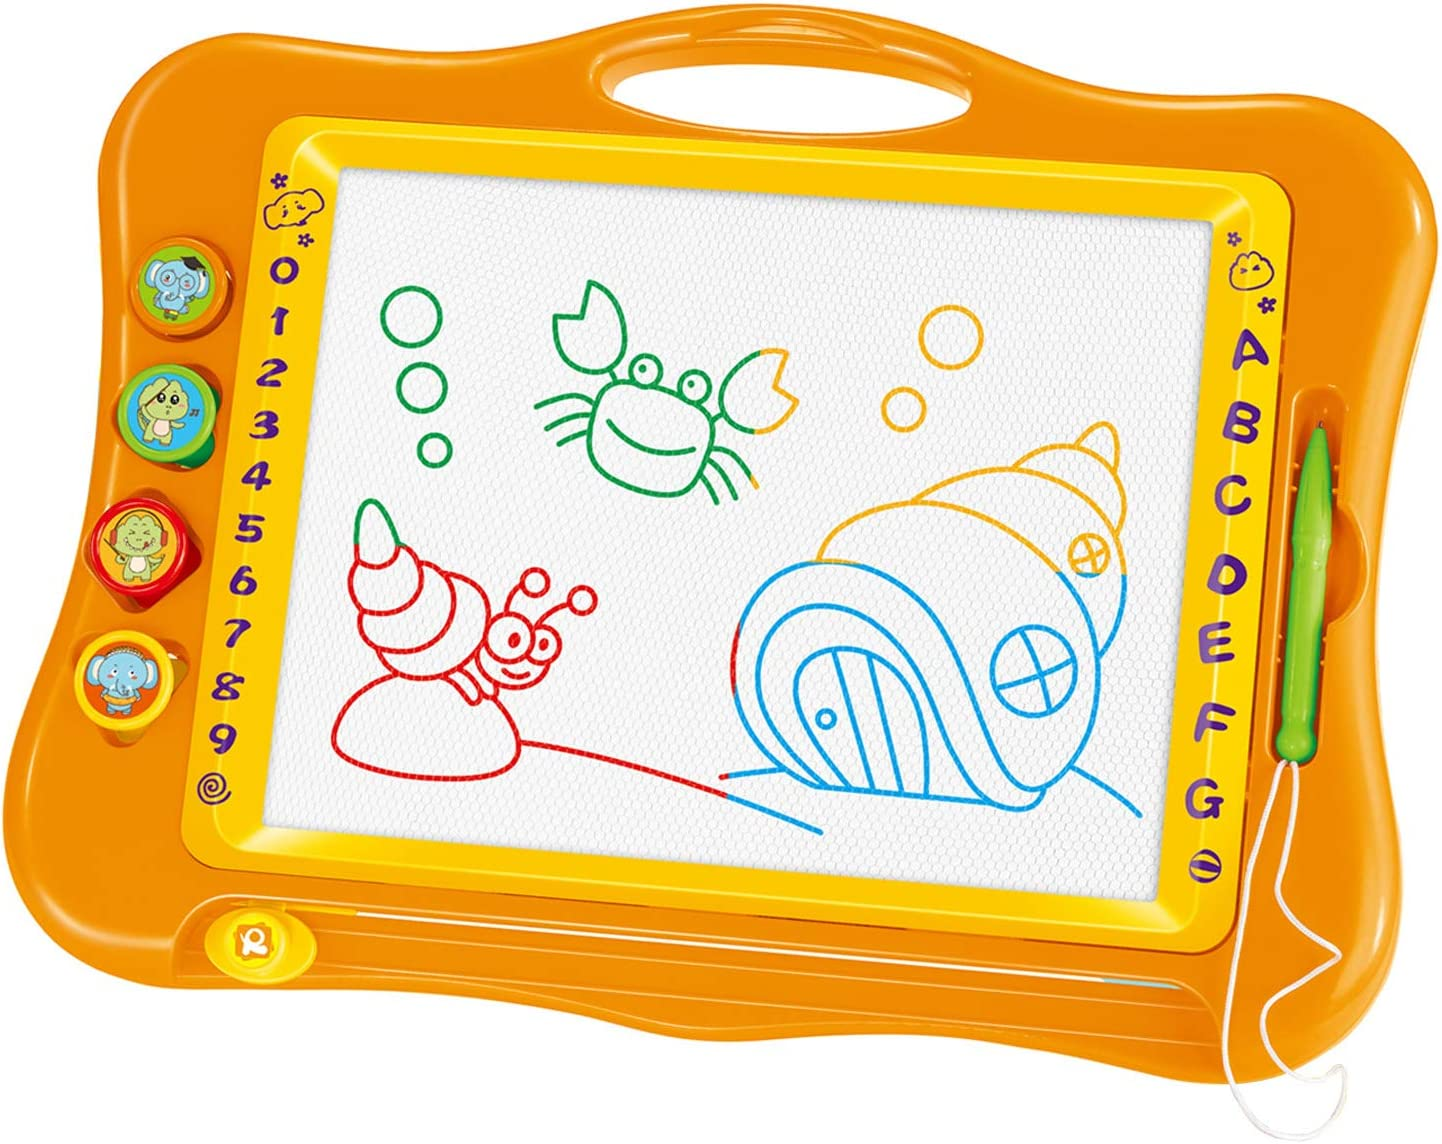 Chilartalent Large Magnetic Drawing Board Toy for Kids Writing, Drawing, Scribble, Doodle and Erasable Slate with Stamps